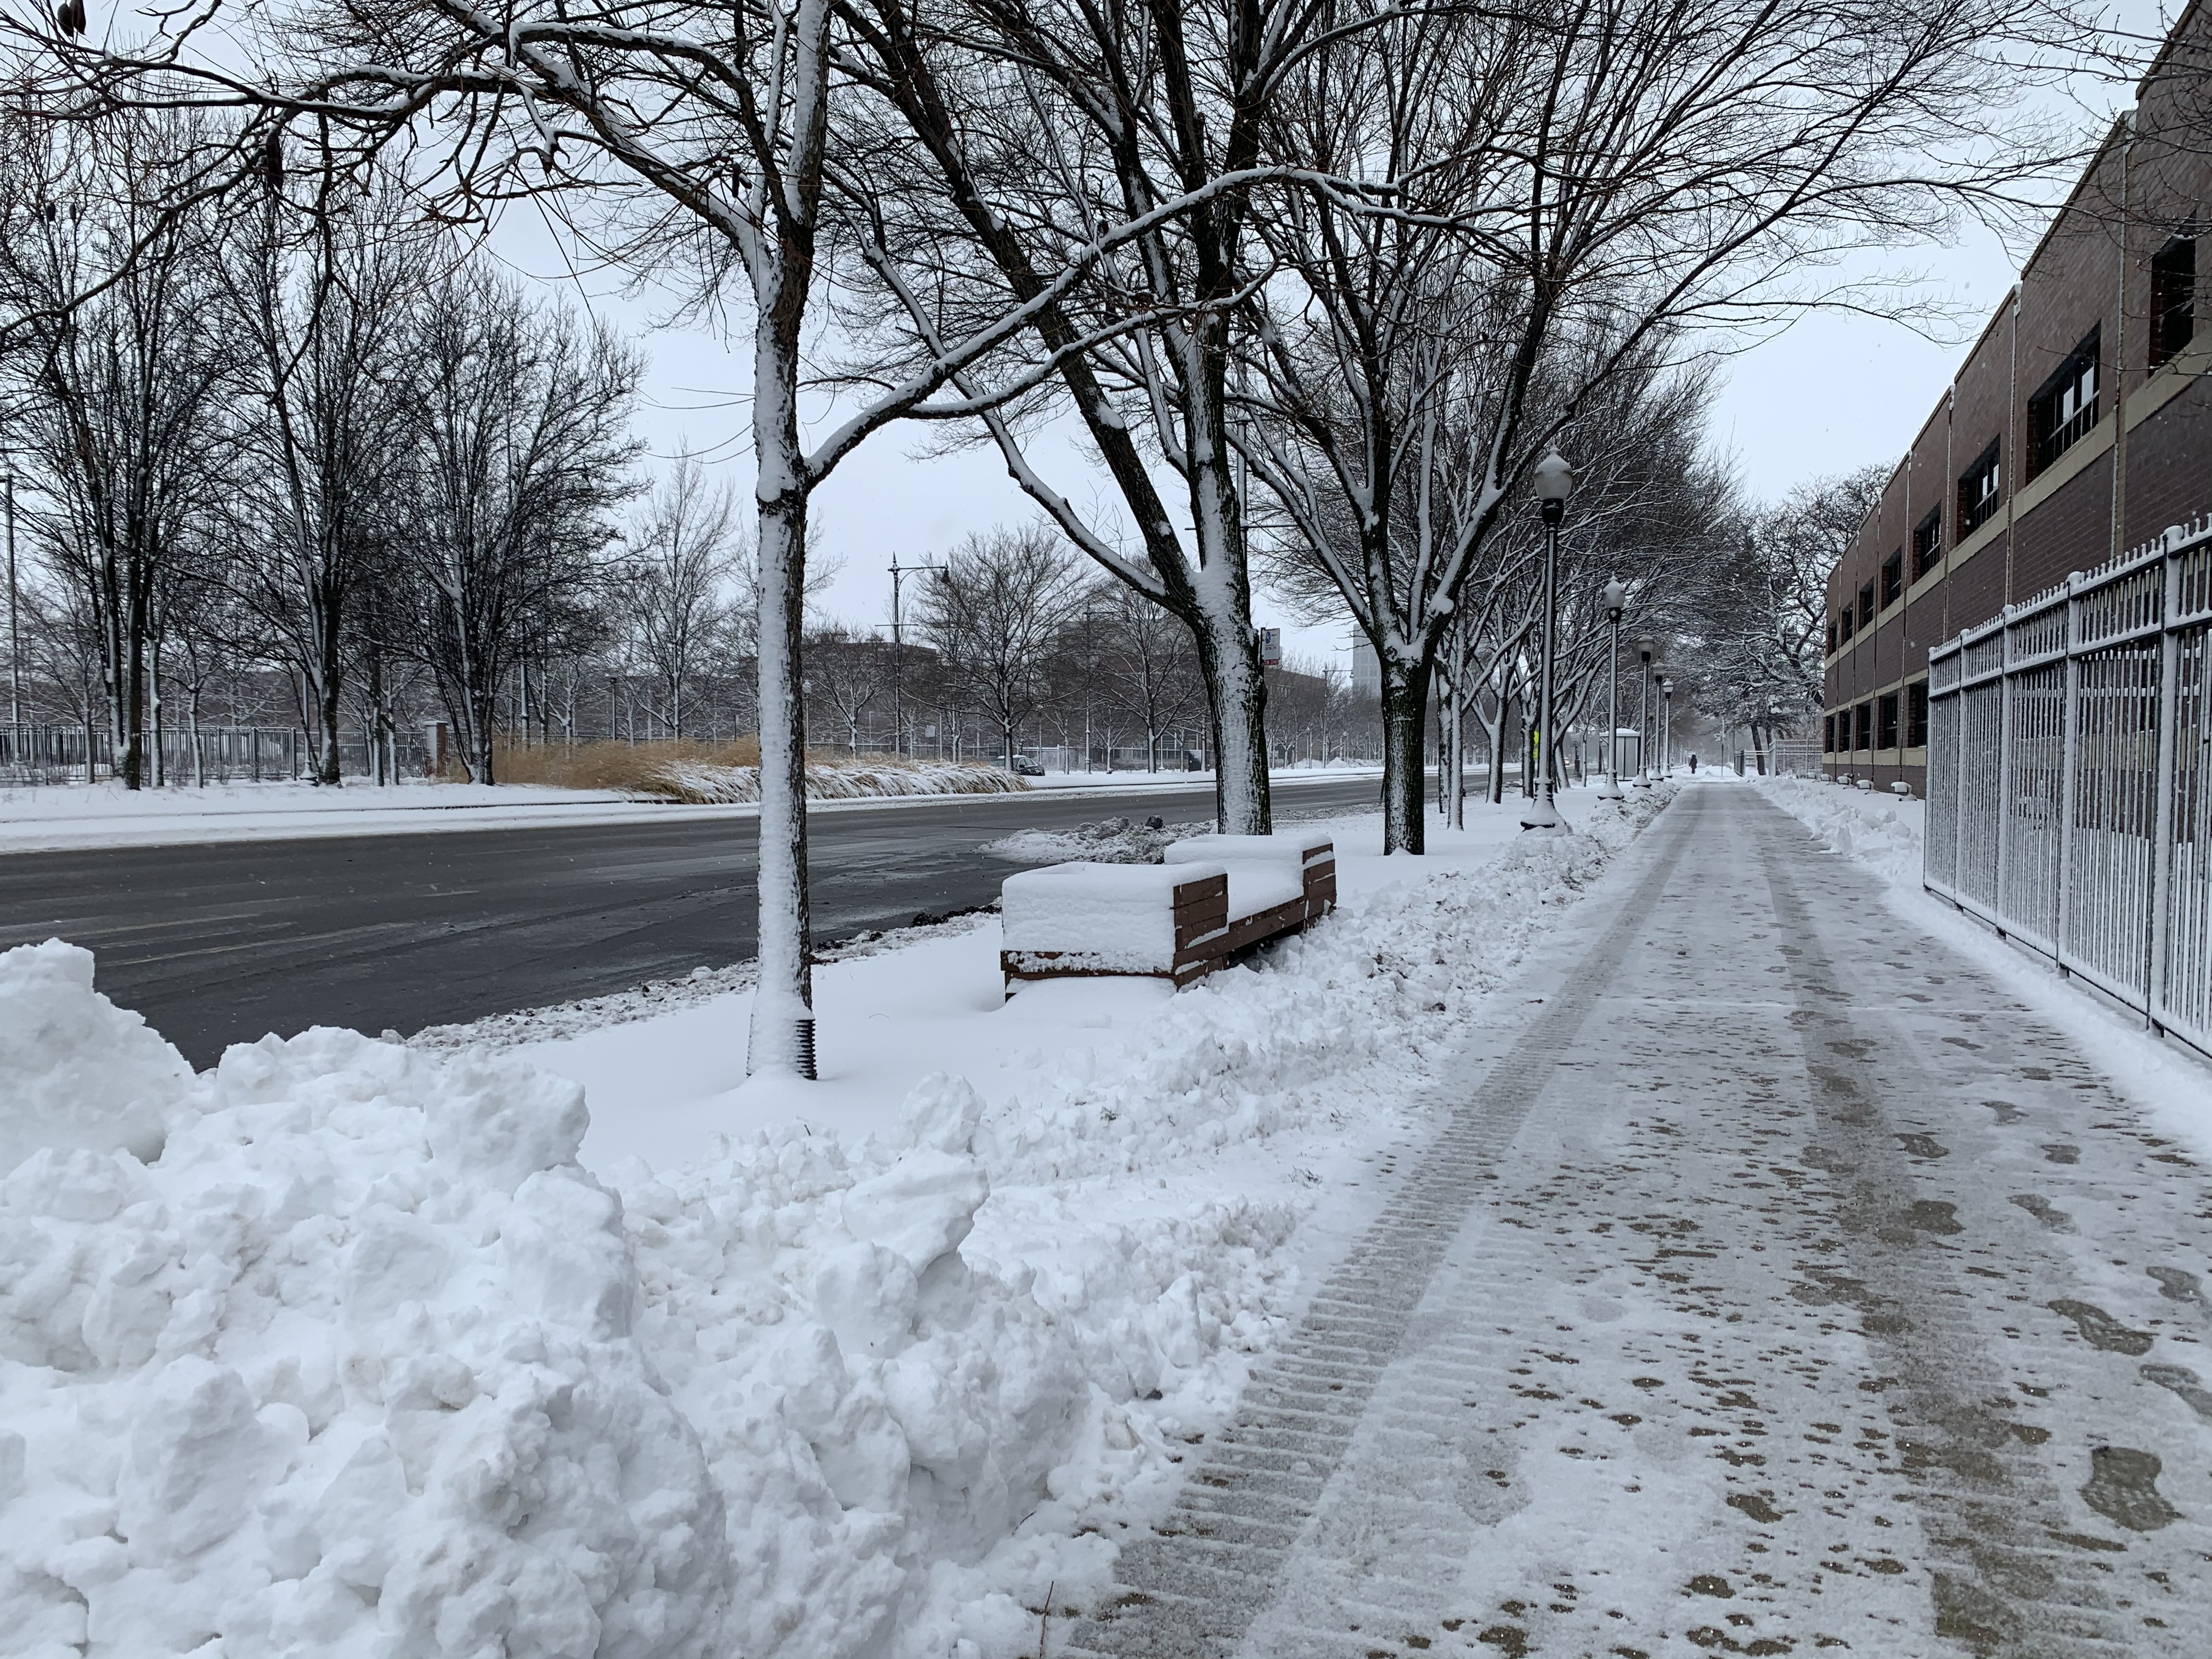 A snow street and sidewalk that has been shoveled off.